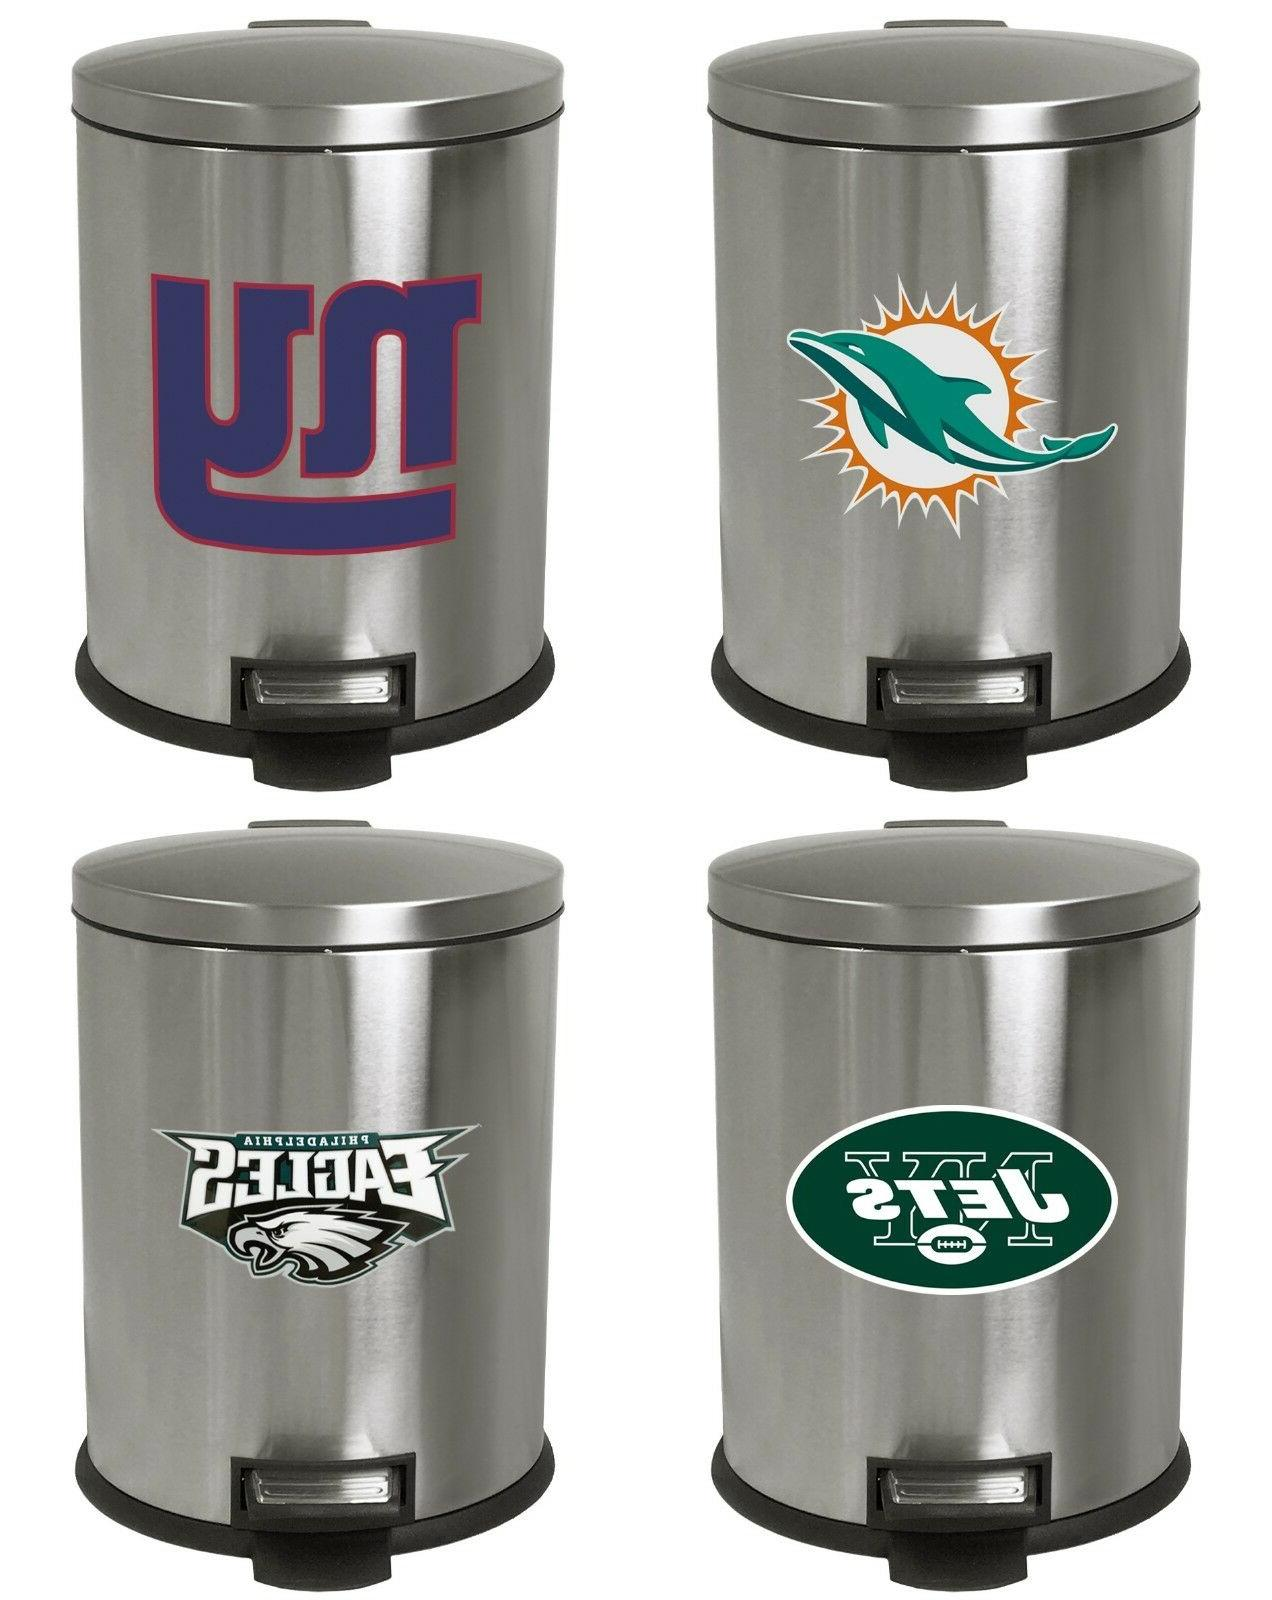 3 1 gal nfl theme stainless steel